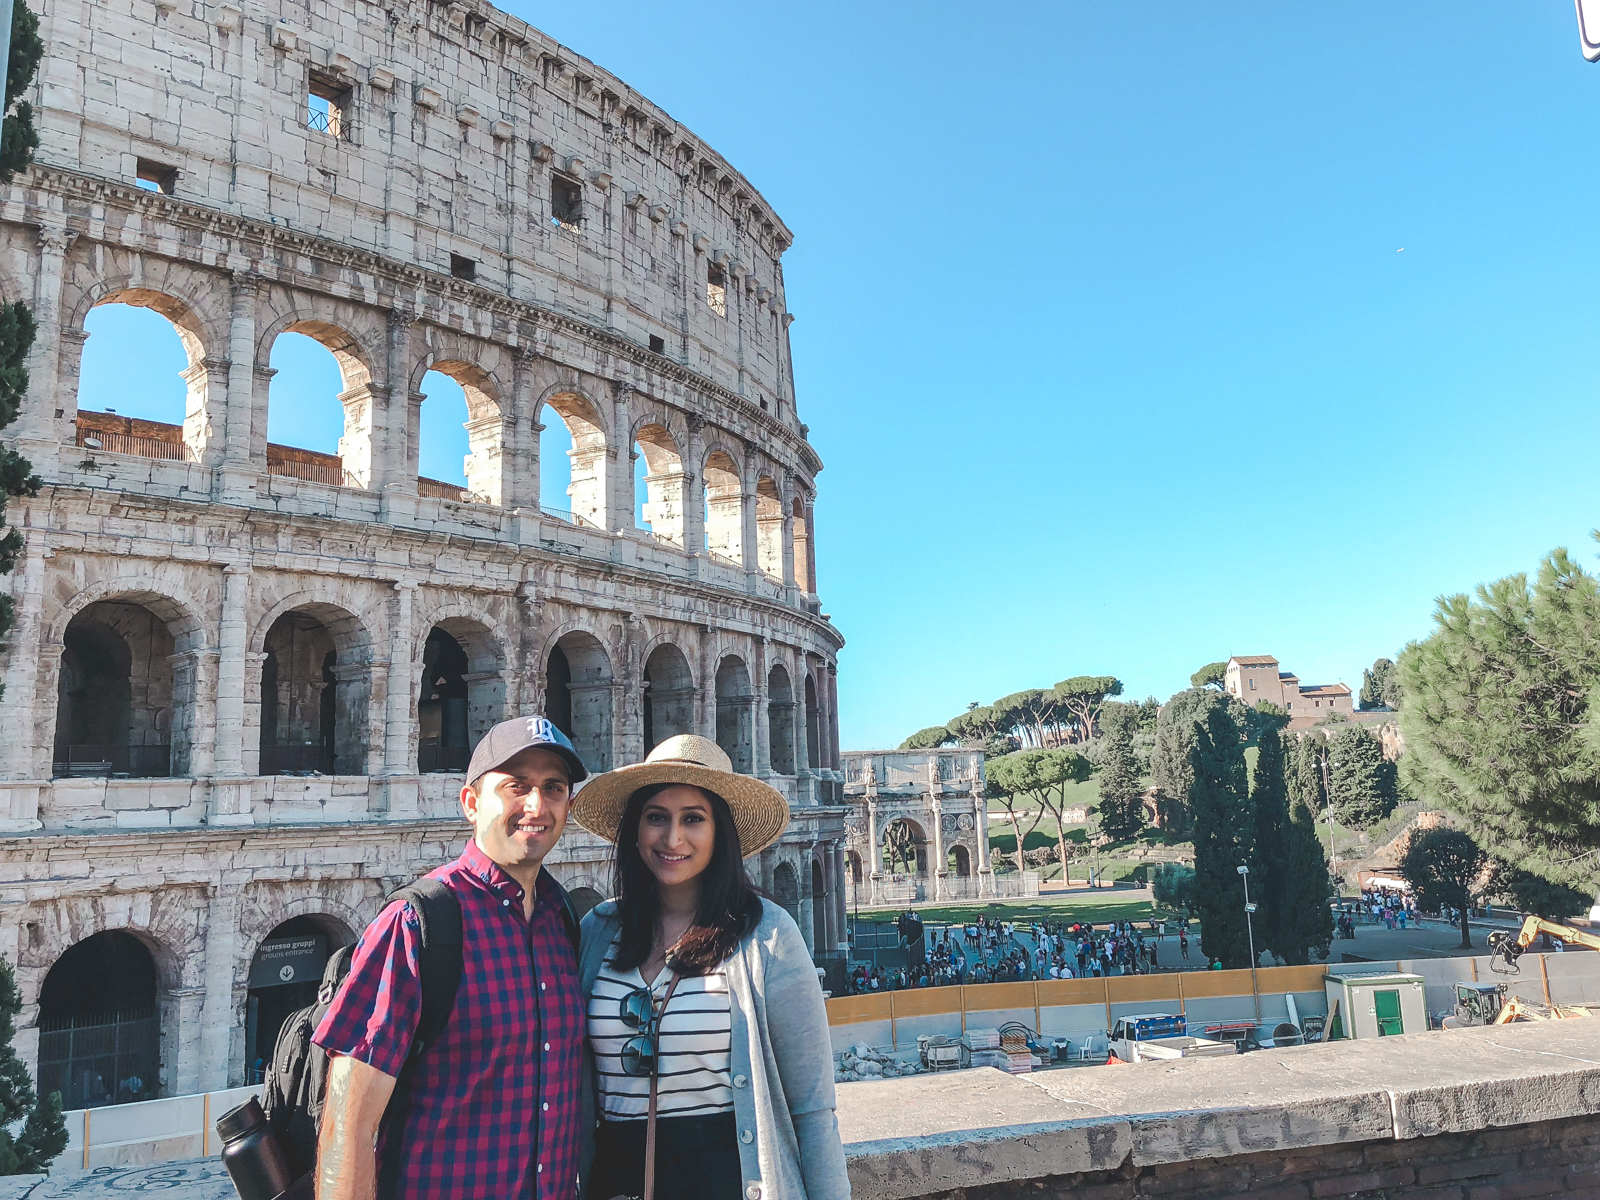 early morning shot of hubby and me in front of the colosseum